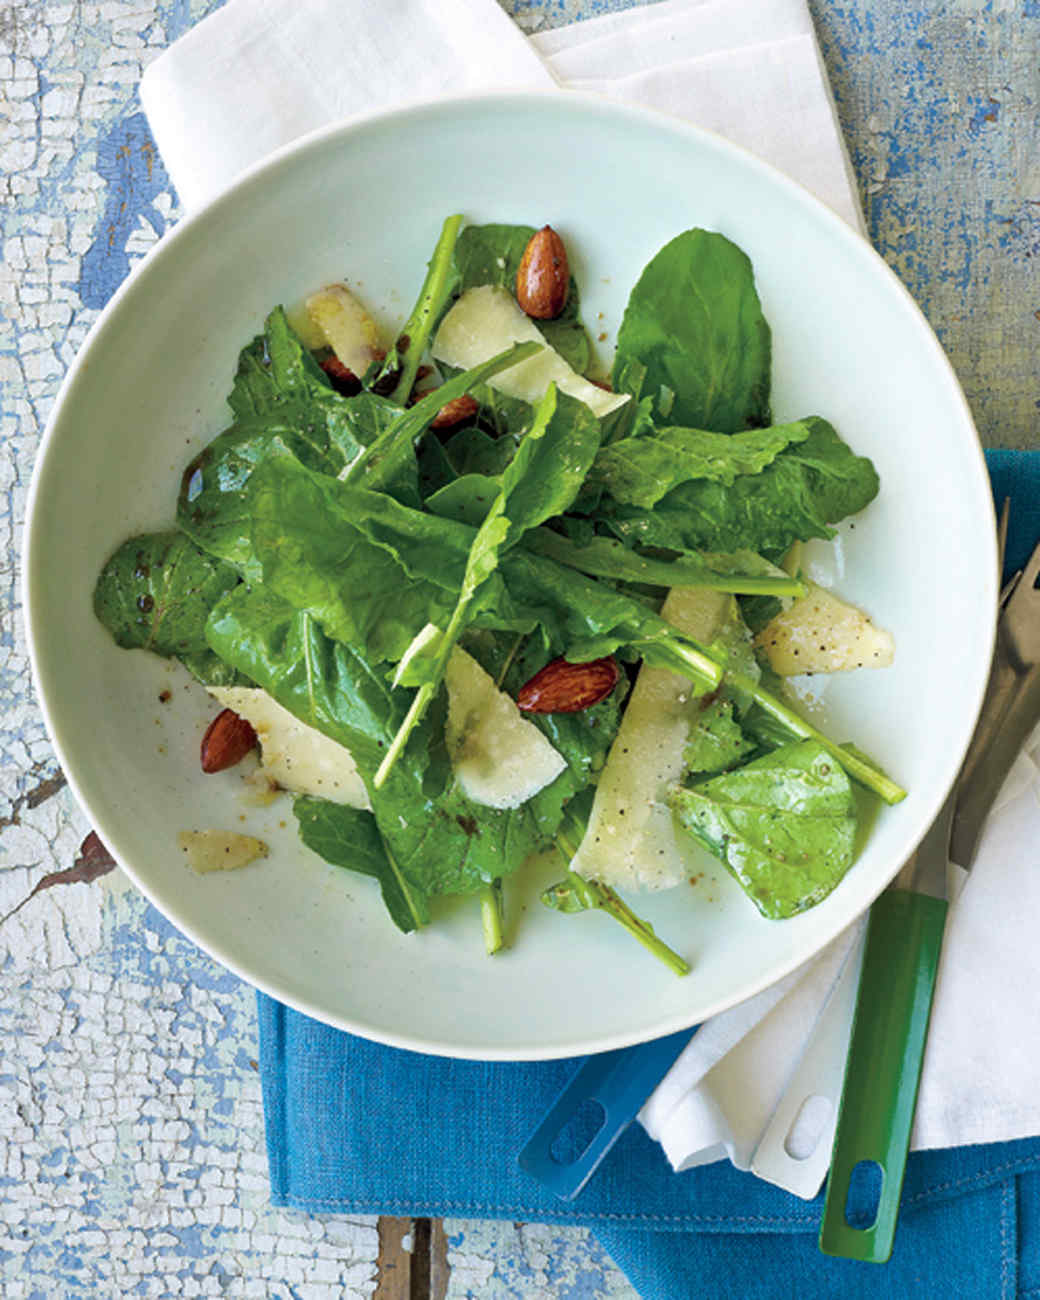 Arugula Salad with Almonds and Parmesan